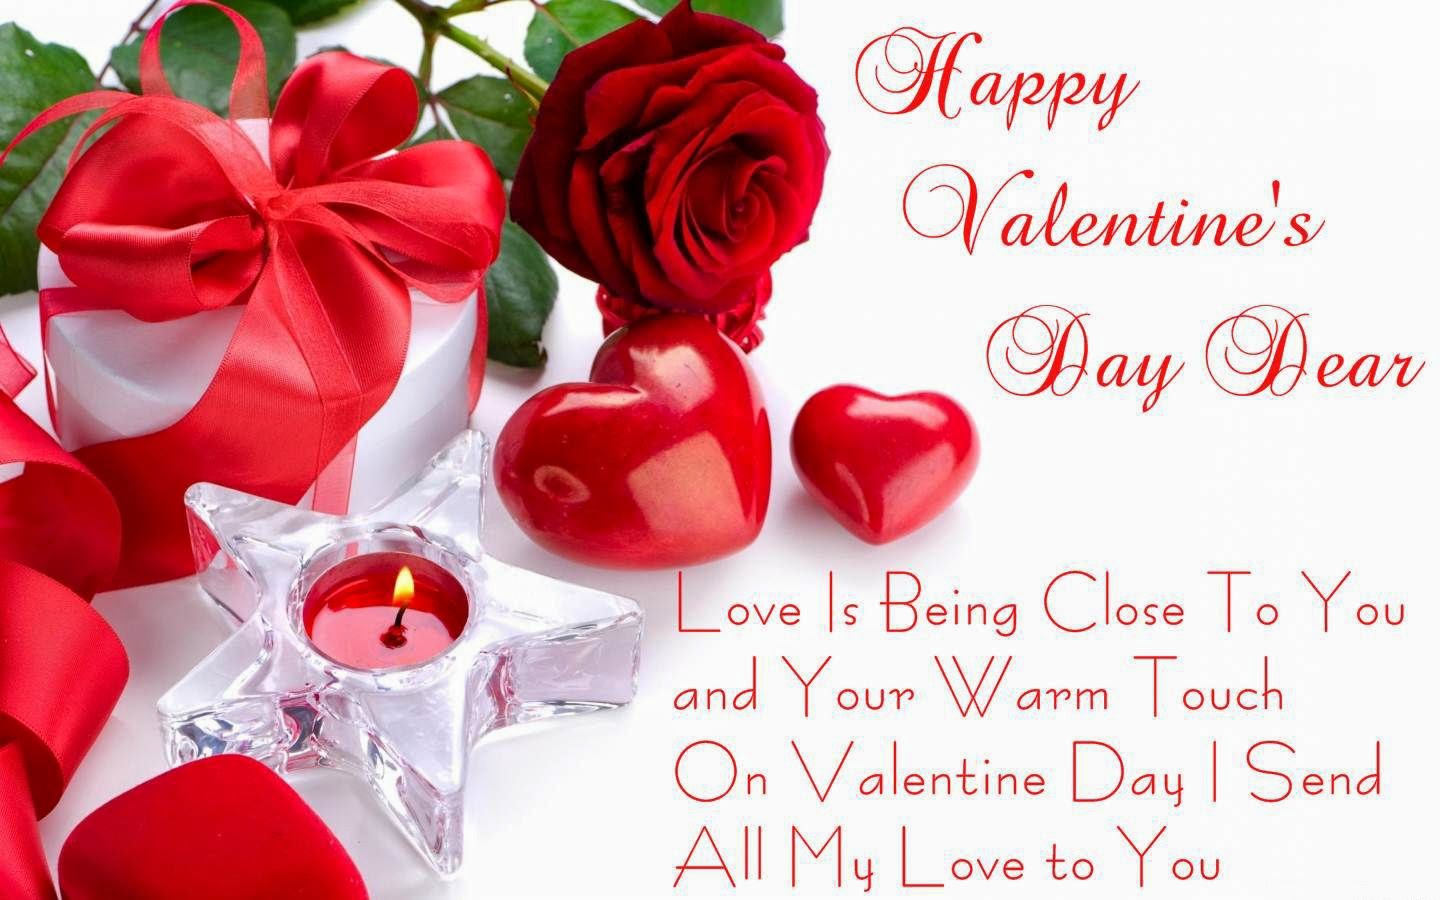 Love Quotes Valentines Day Endearing Quotes For Valentines Day Wishes  Valentine's Day Info